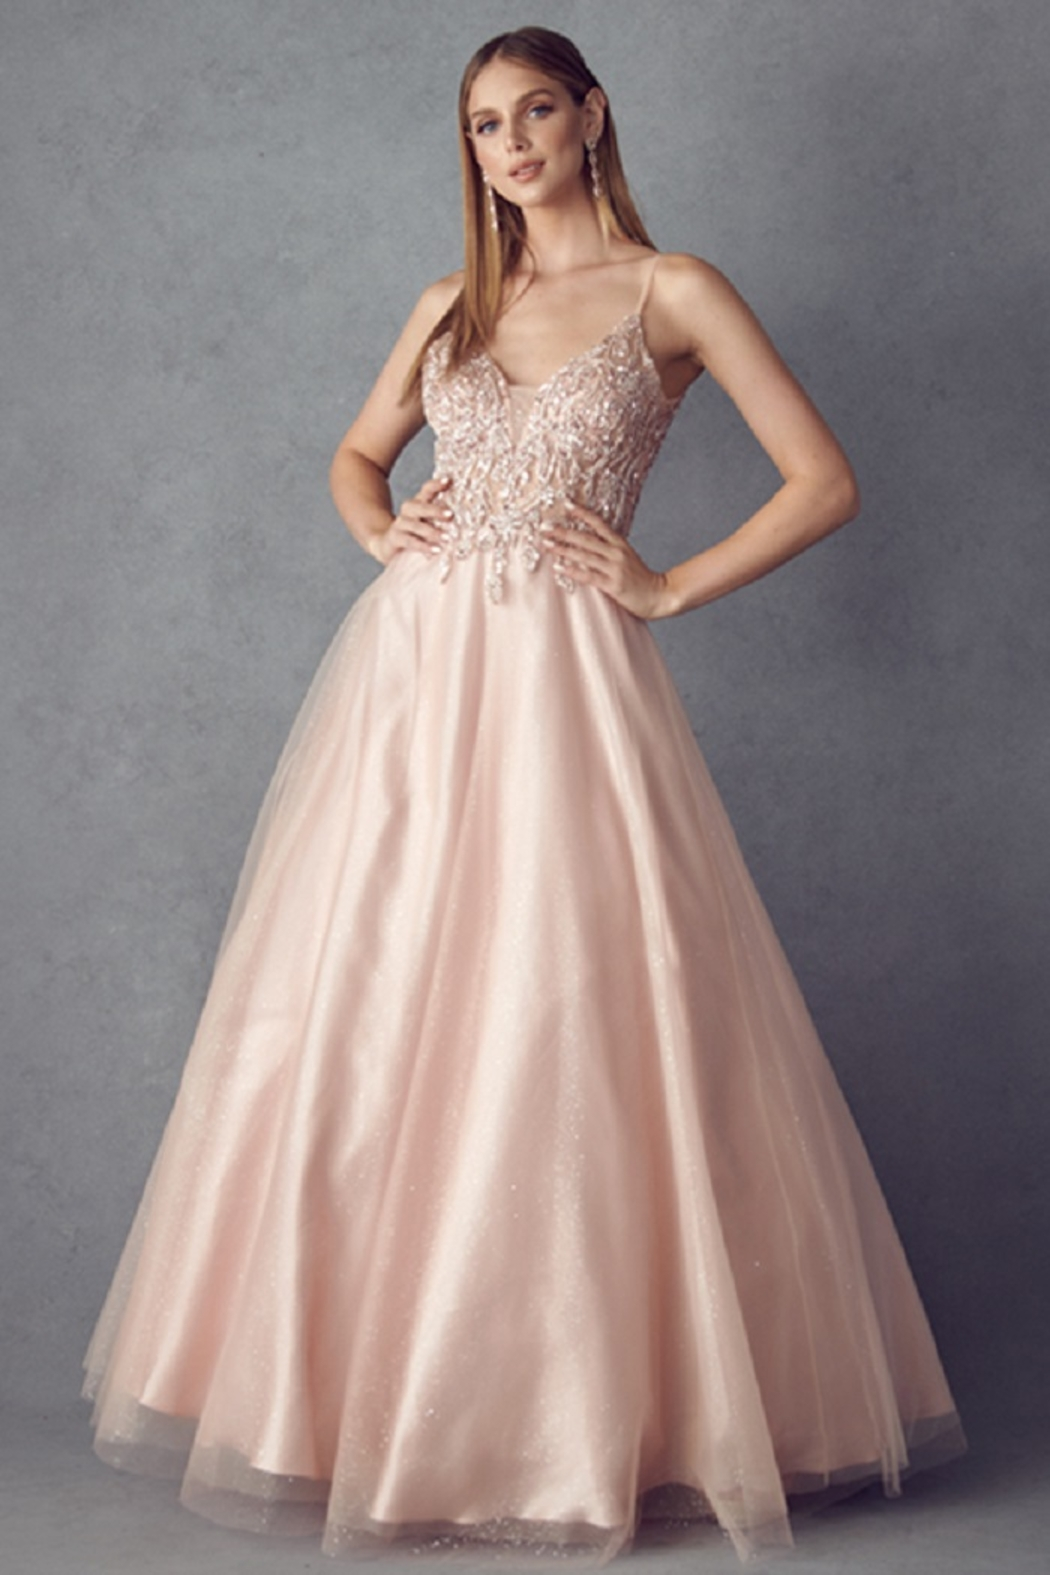 Juliet Rose Gold Beaded Formal Ball Gown - Main Image